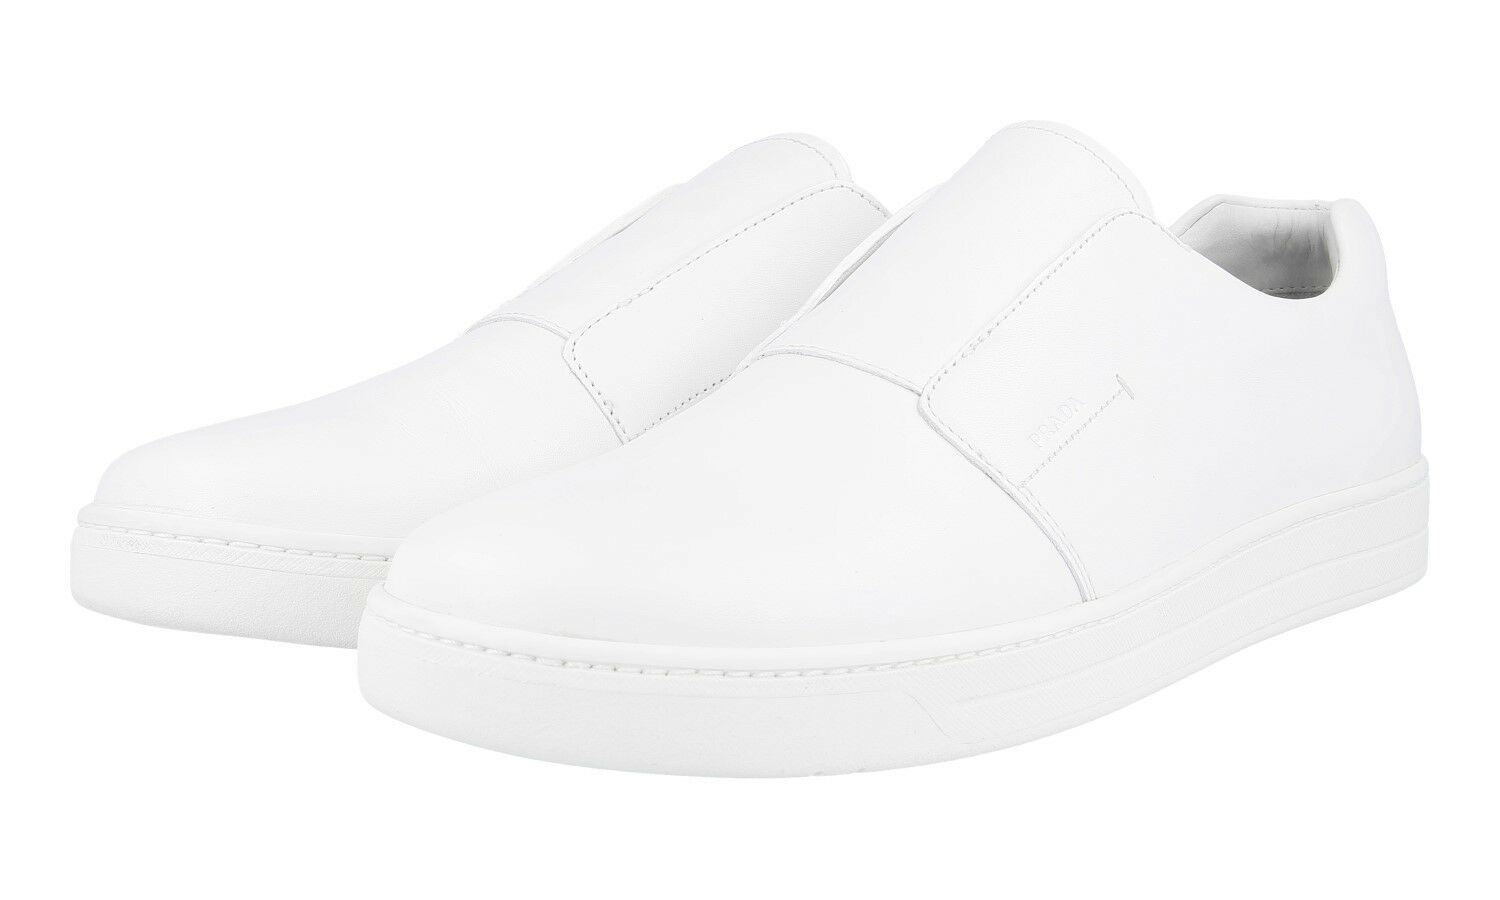 AUTHENTIC LUXURY PRADA SNEAKERS SHOES 4D2870 WHITE NEW 9,5 43,5 44